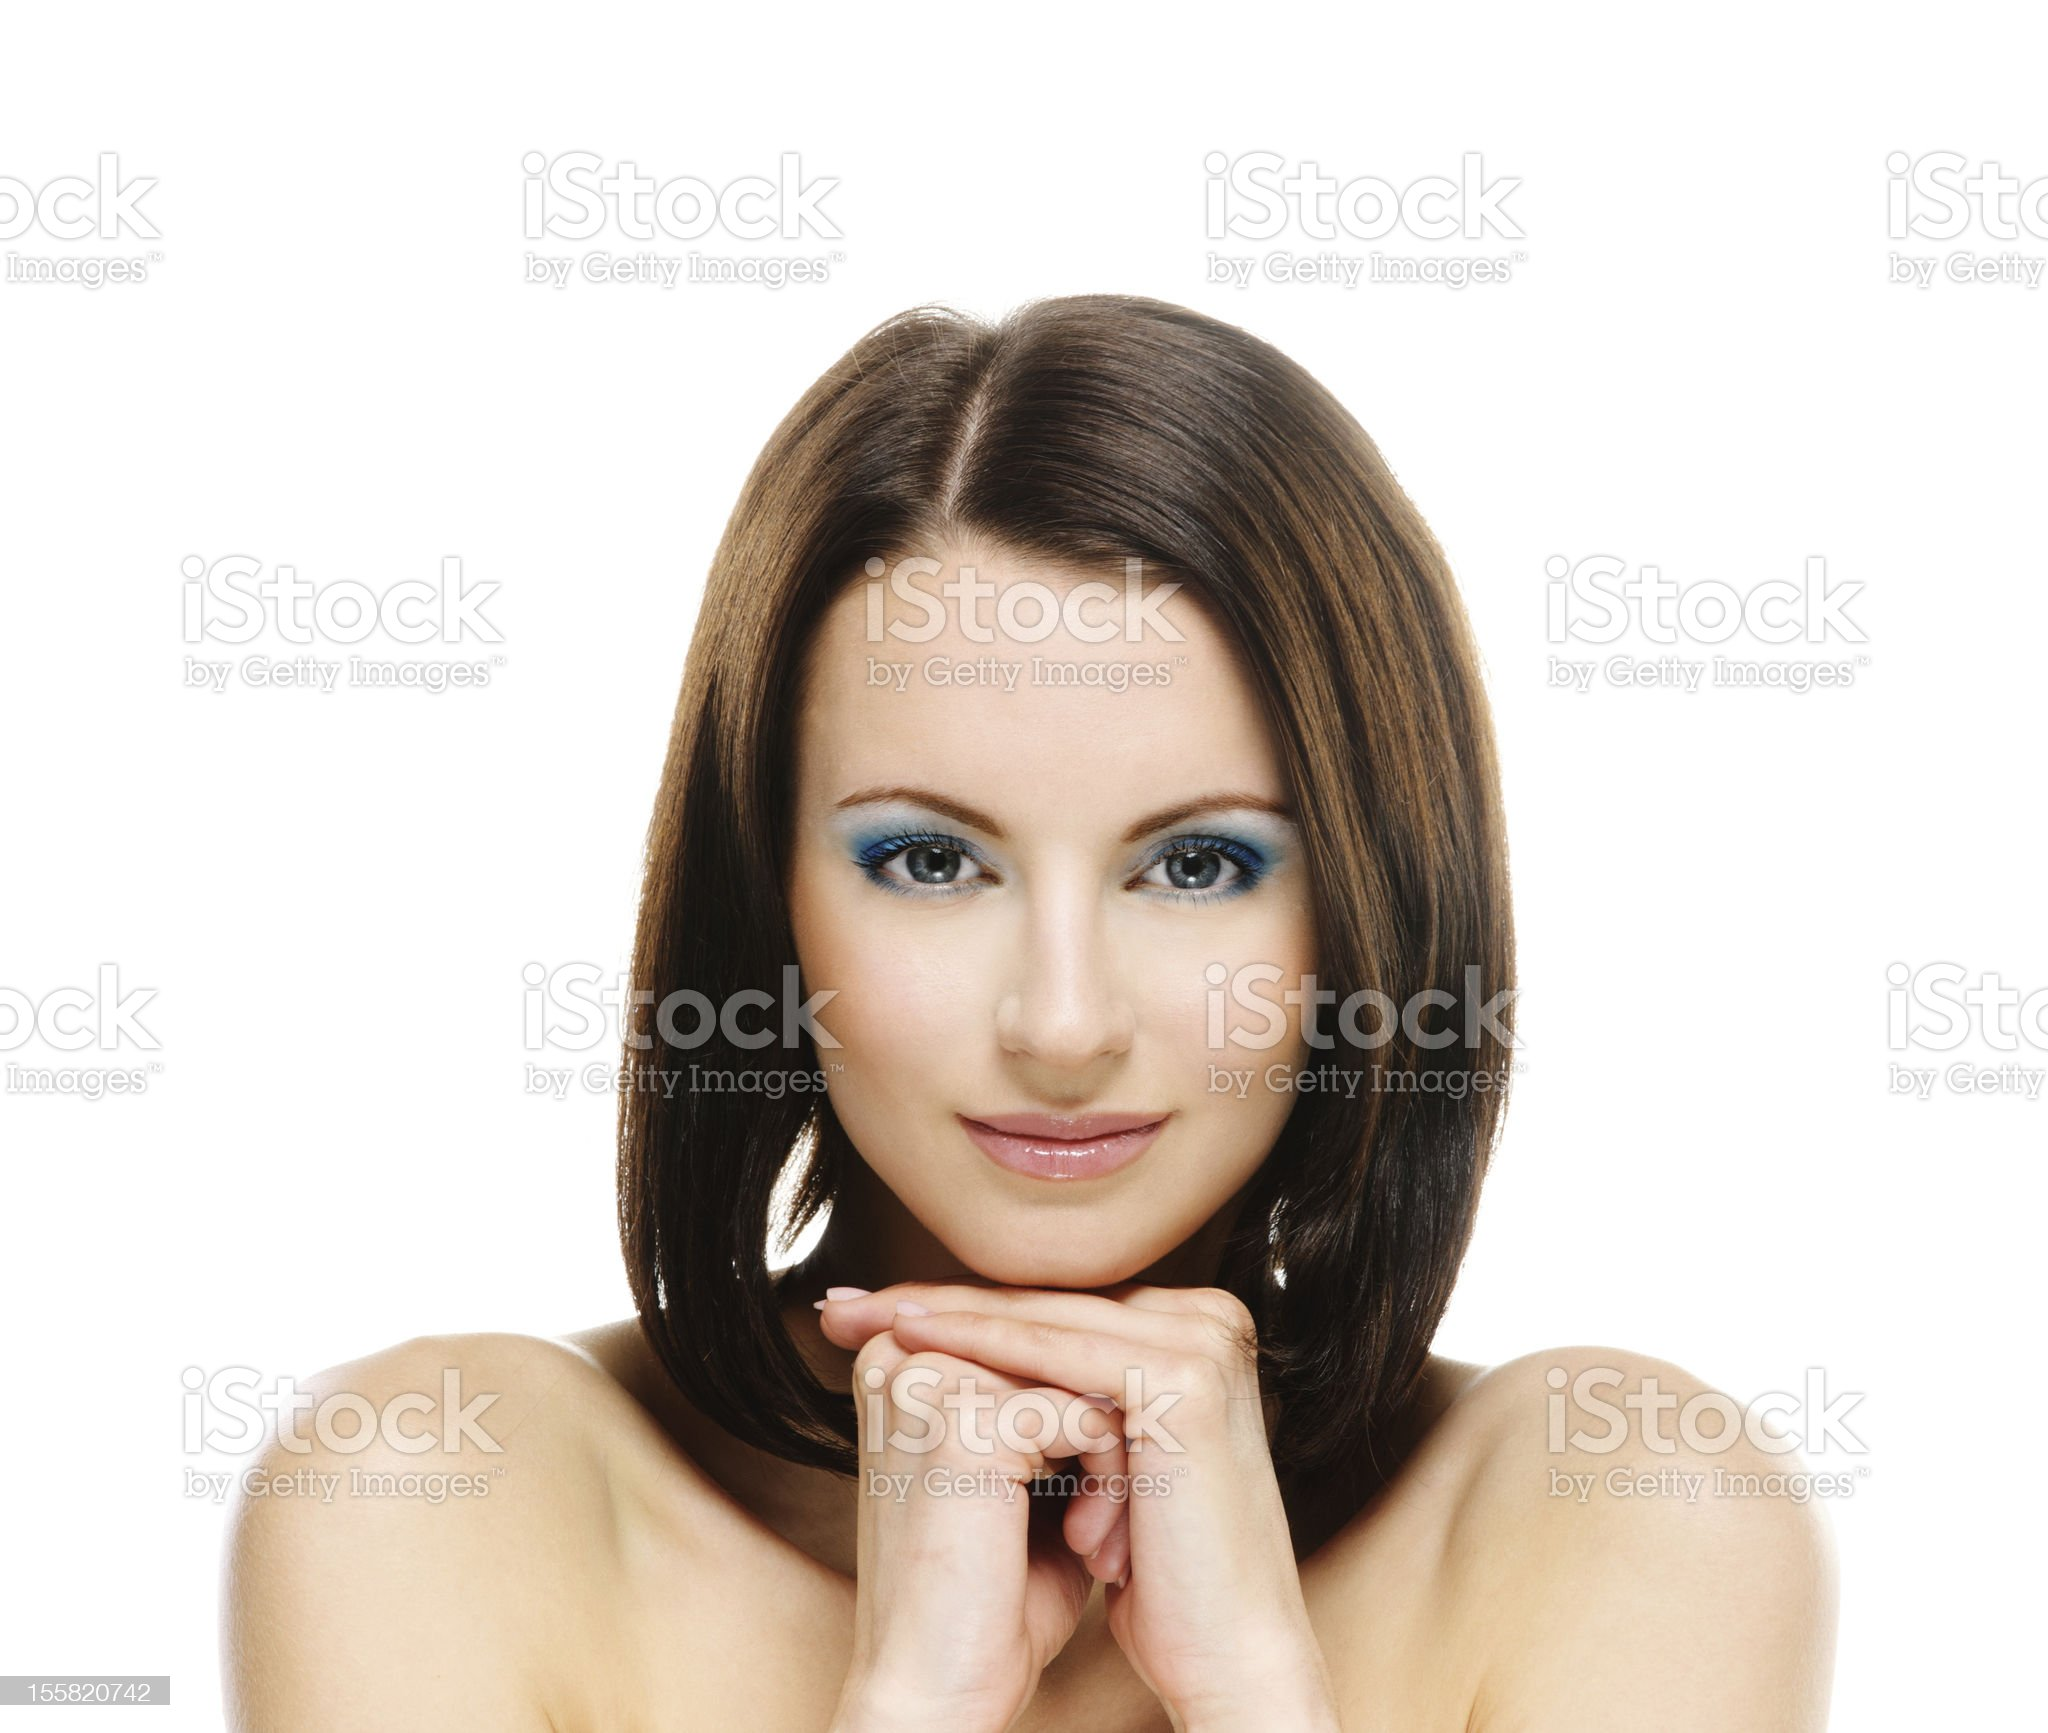 Charming young woman royalty-free stock photo